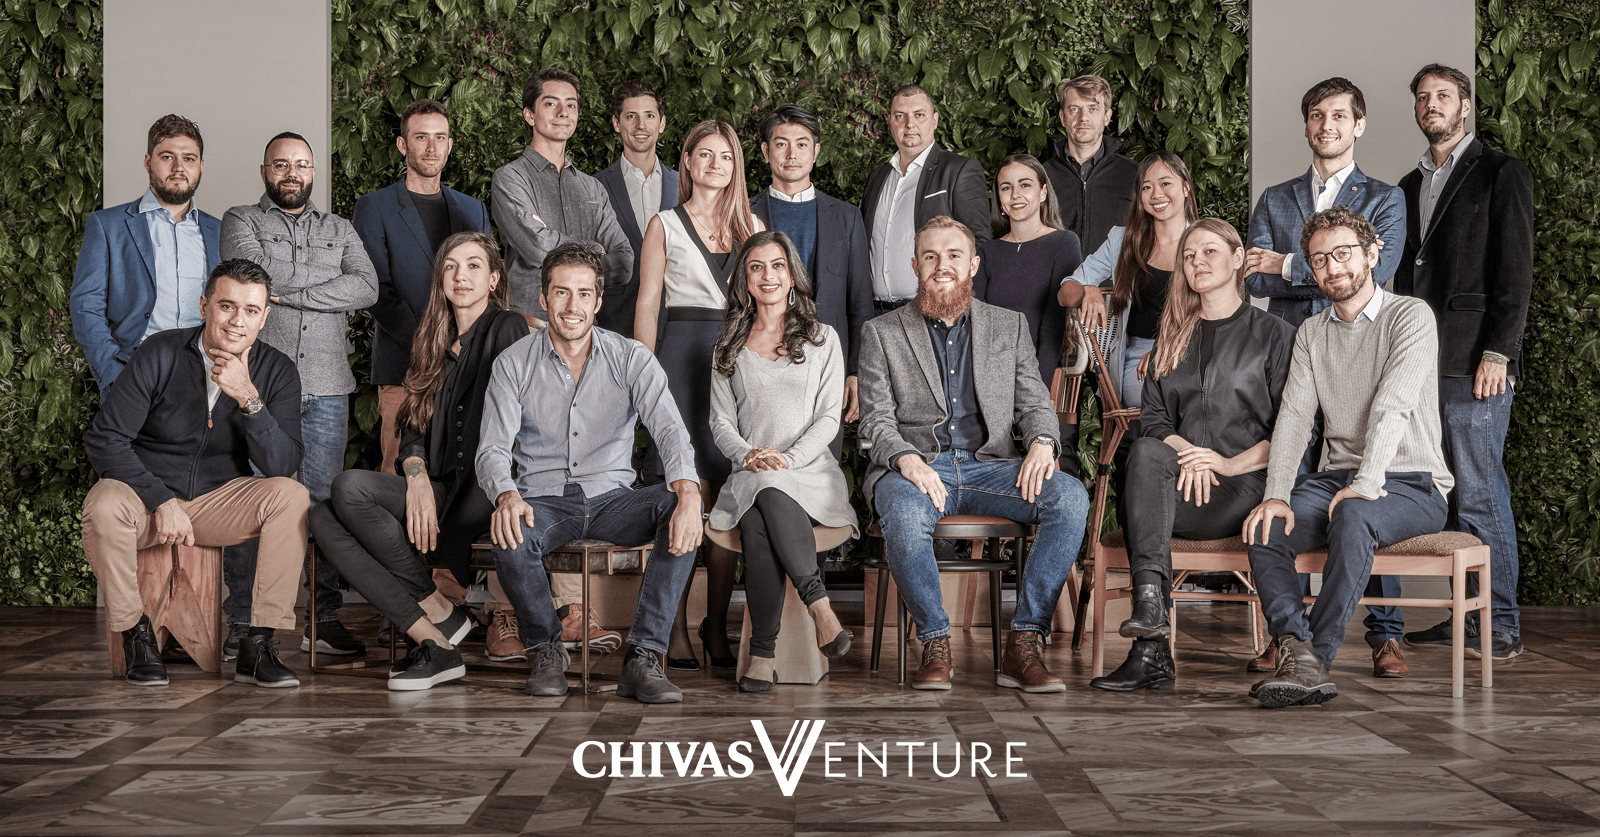 Attend the Chivas Venture Final at TNW2019